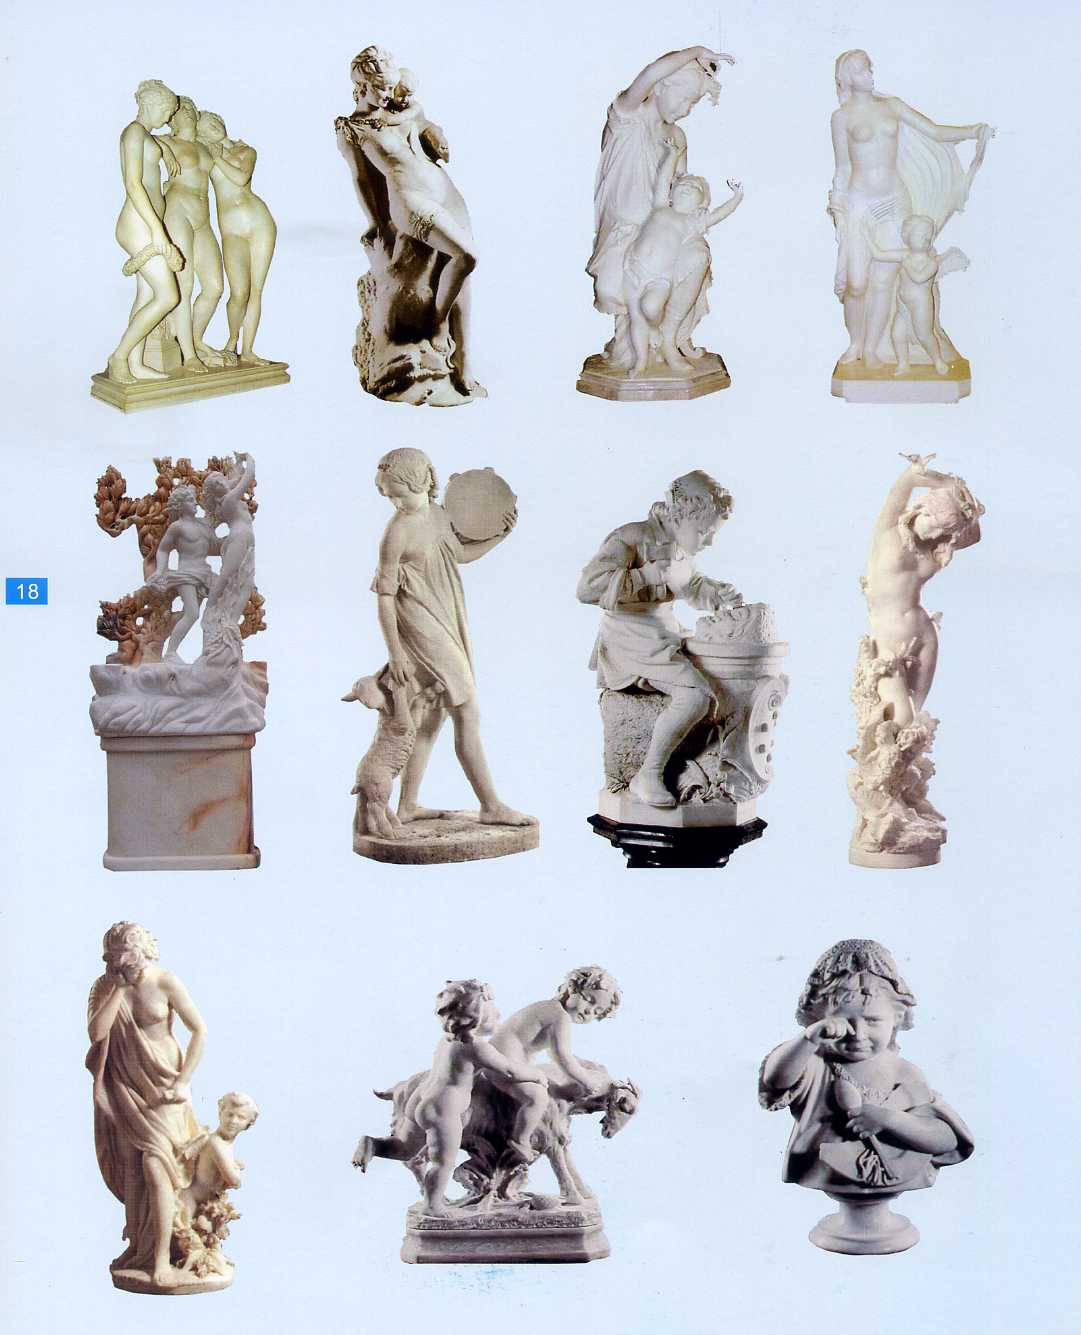 marble stone carving sculptures